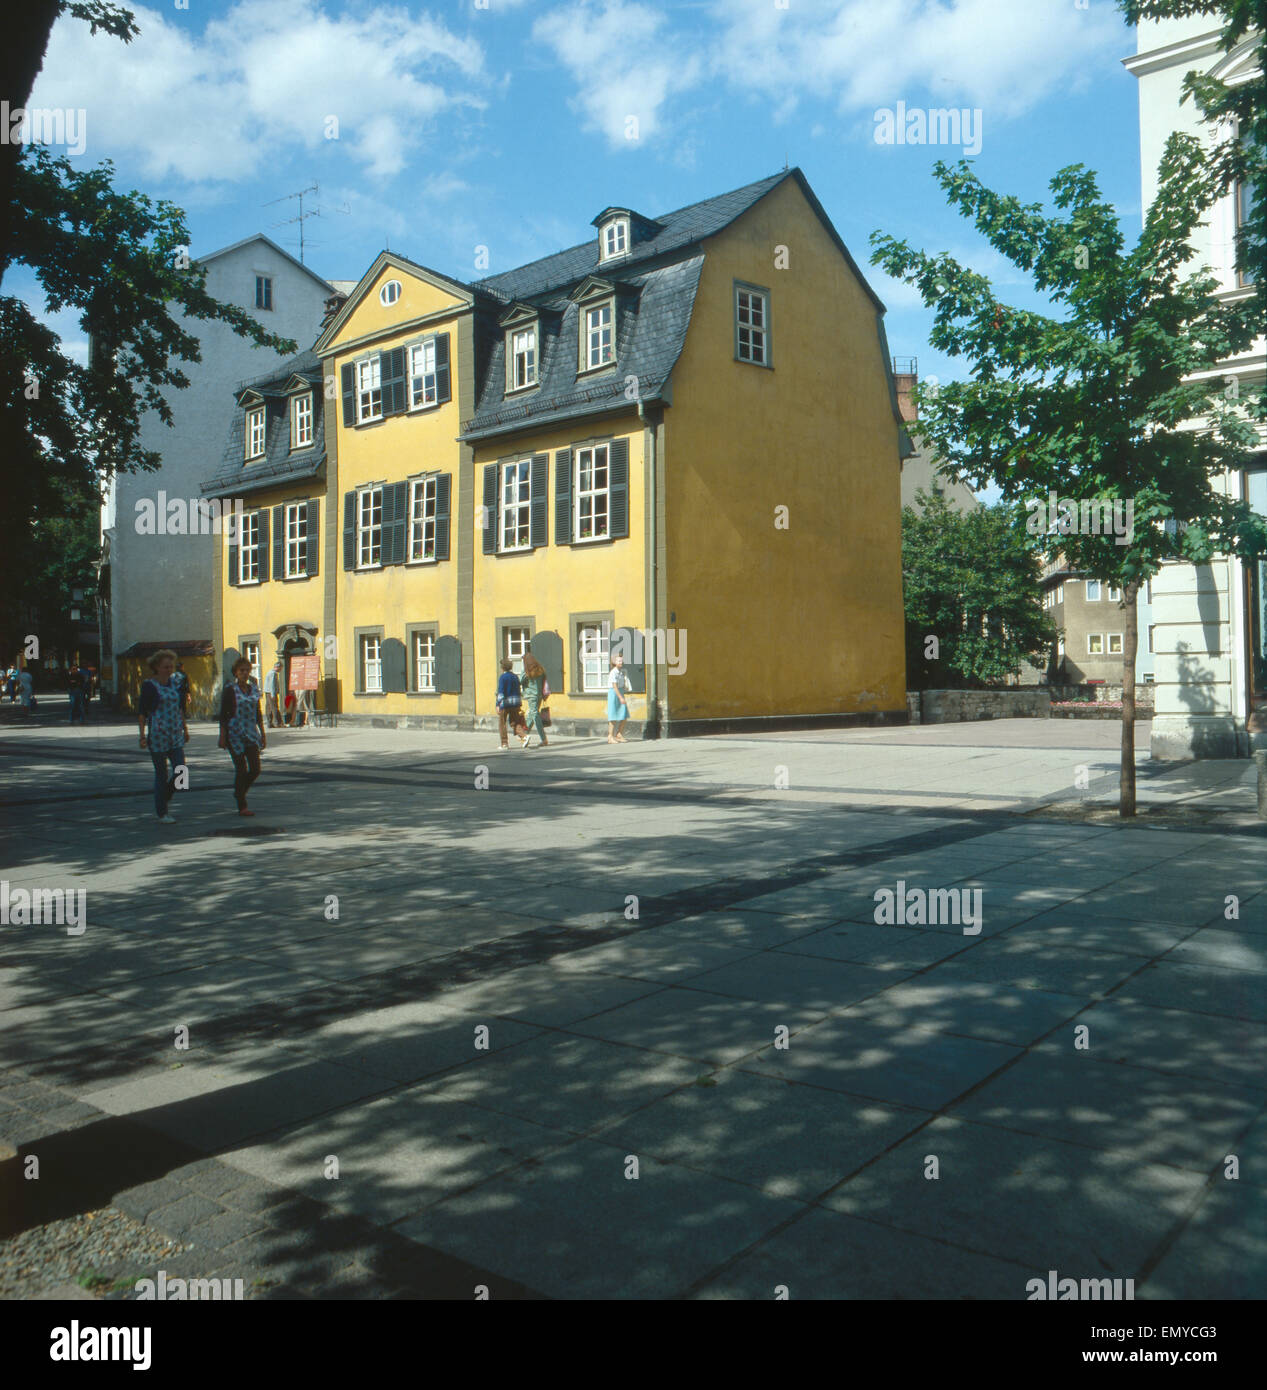 Ddr Küchenmesser Weimar 1919 Stockfotos And Weimar 1919 Bilder Alamy